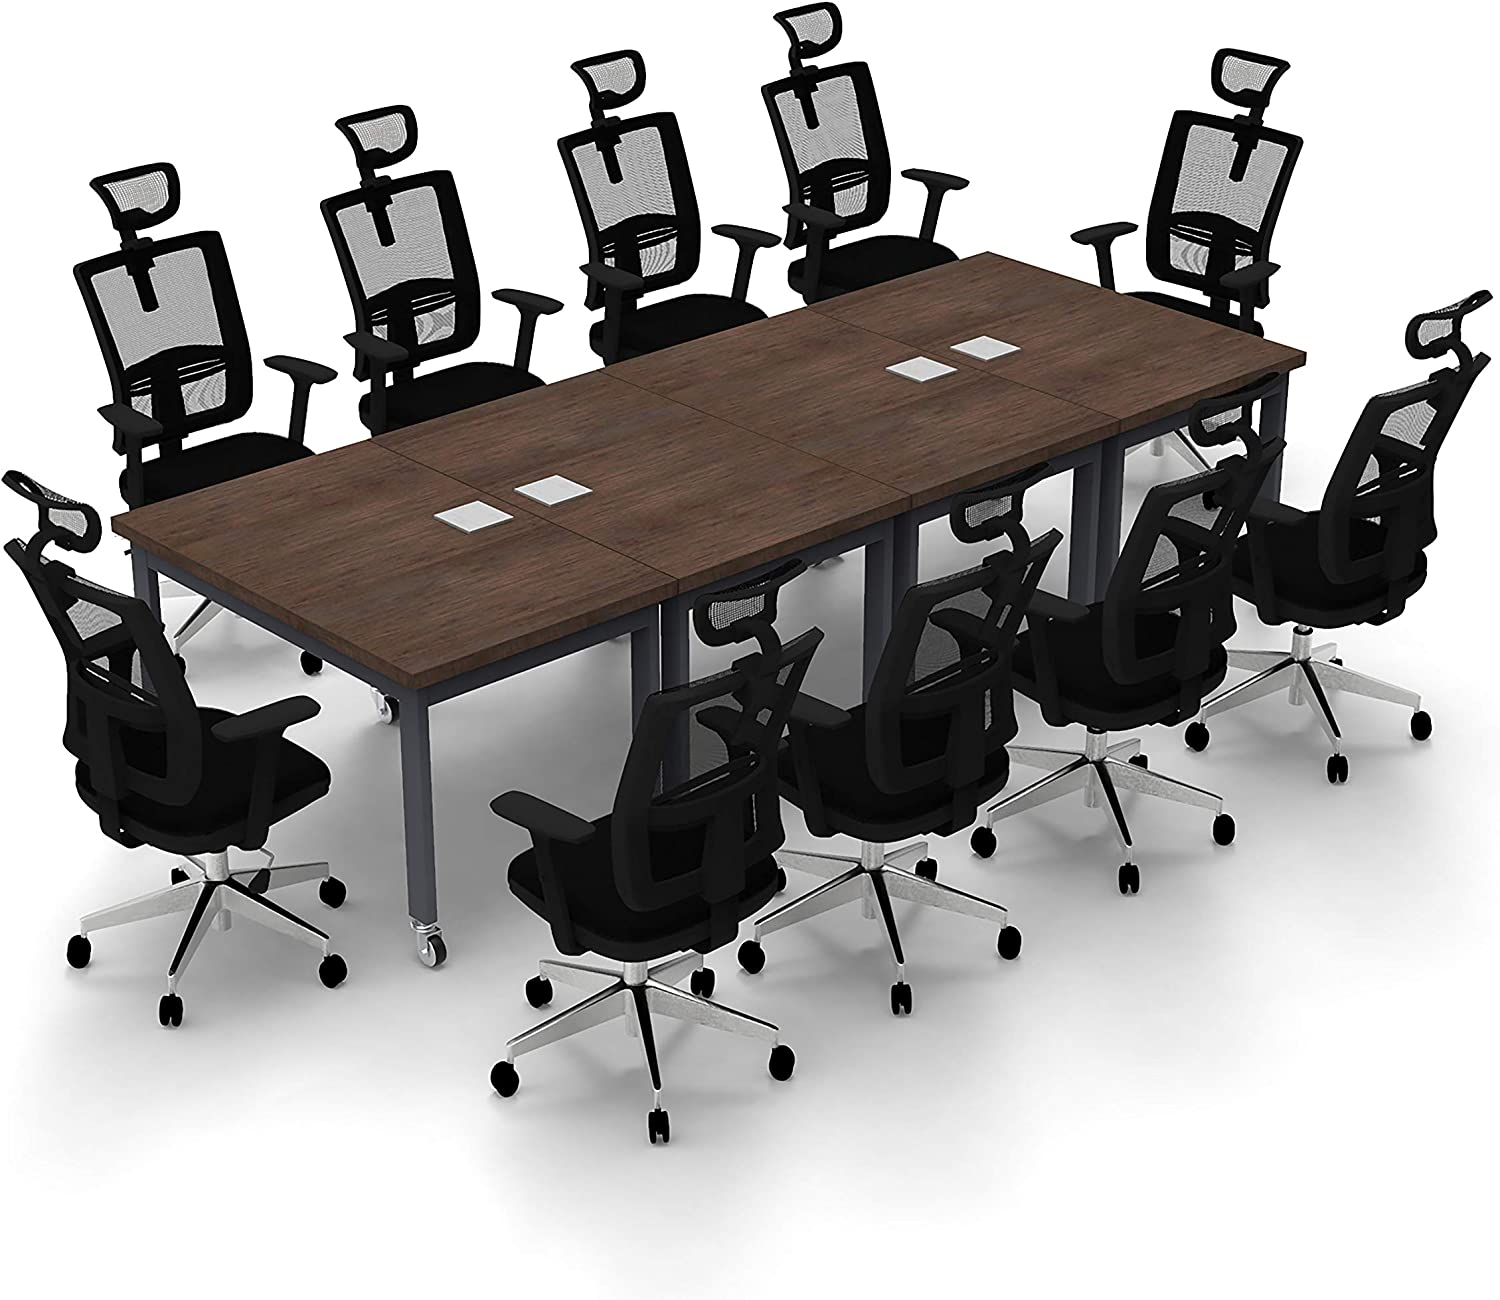 Bargain Conference Tables Meeting Seminar Model Java 55% OFF 4pc Color X-Th 6424